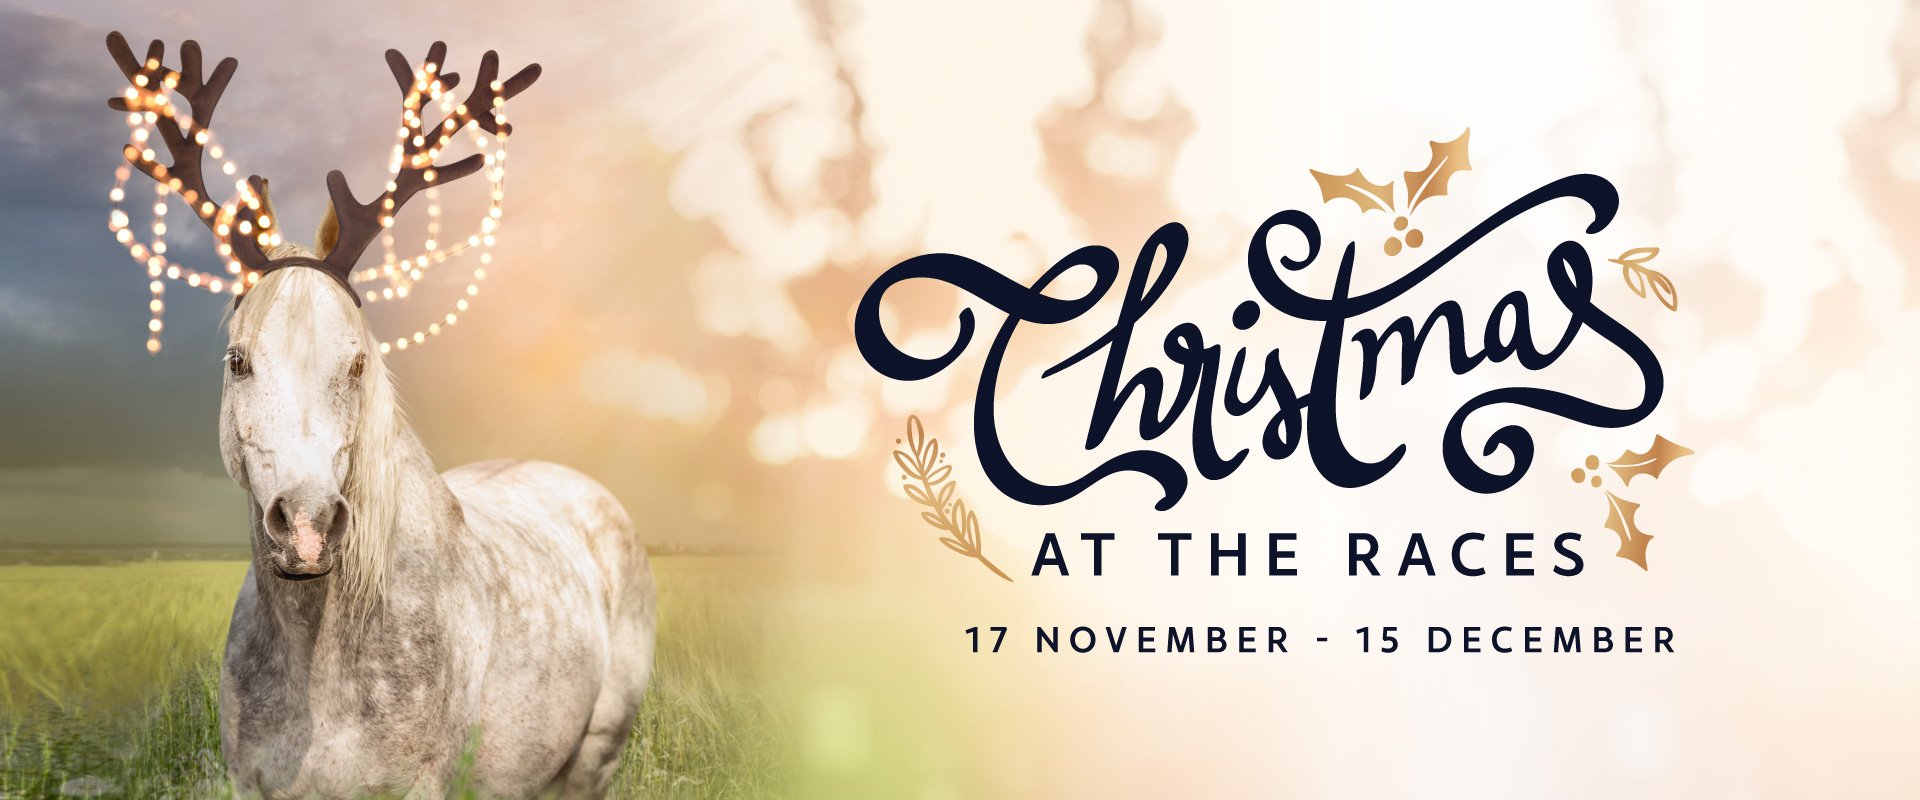 Celebrate the end of the year with Christmas at the Races